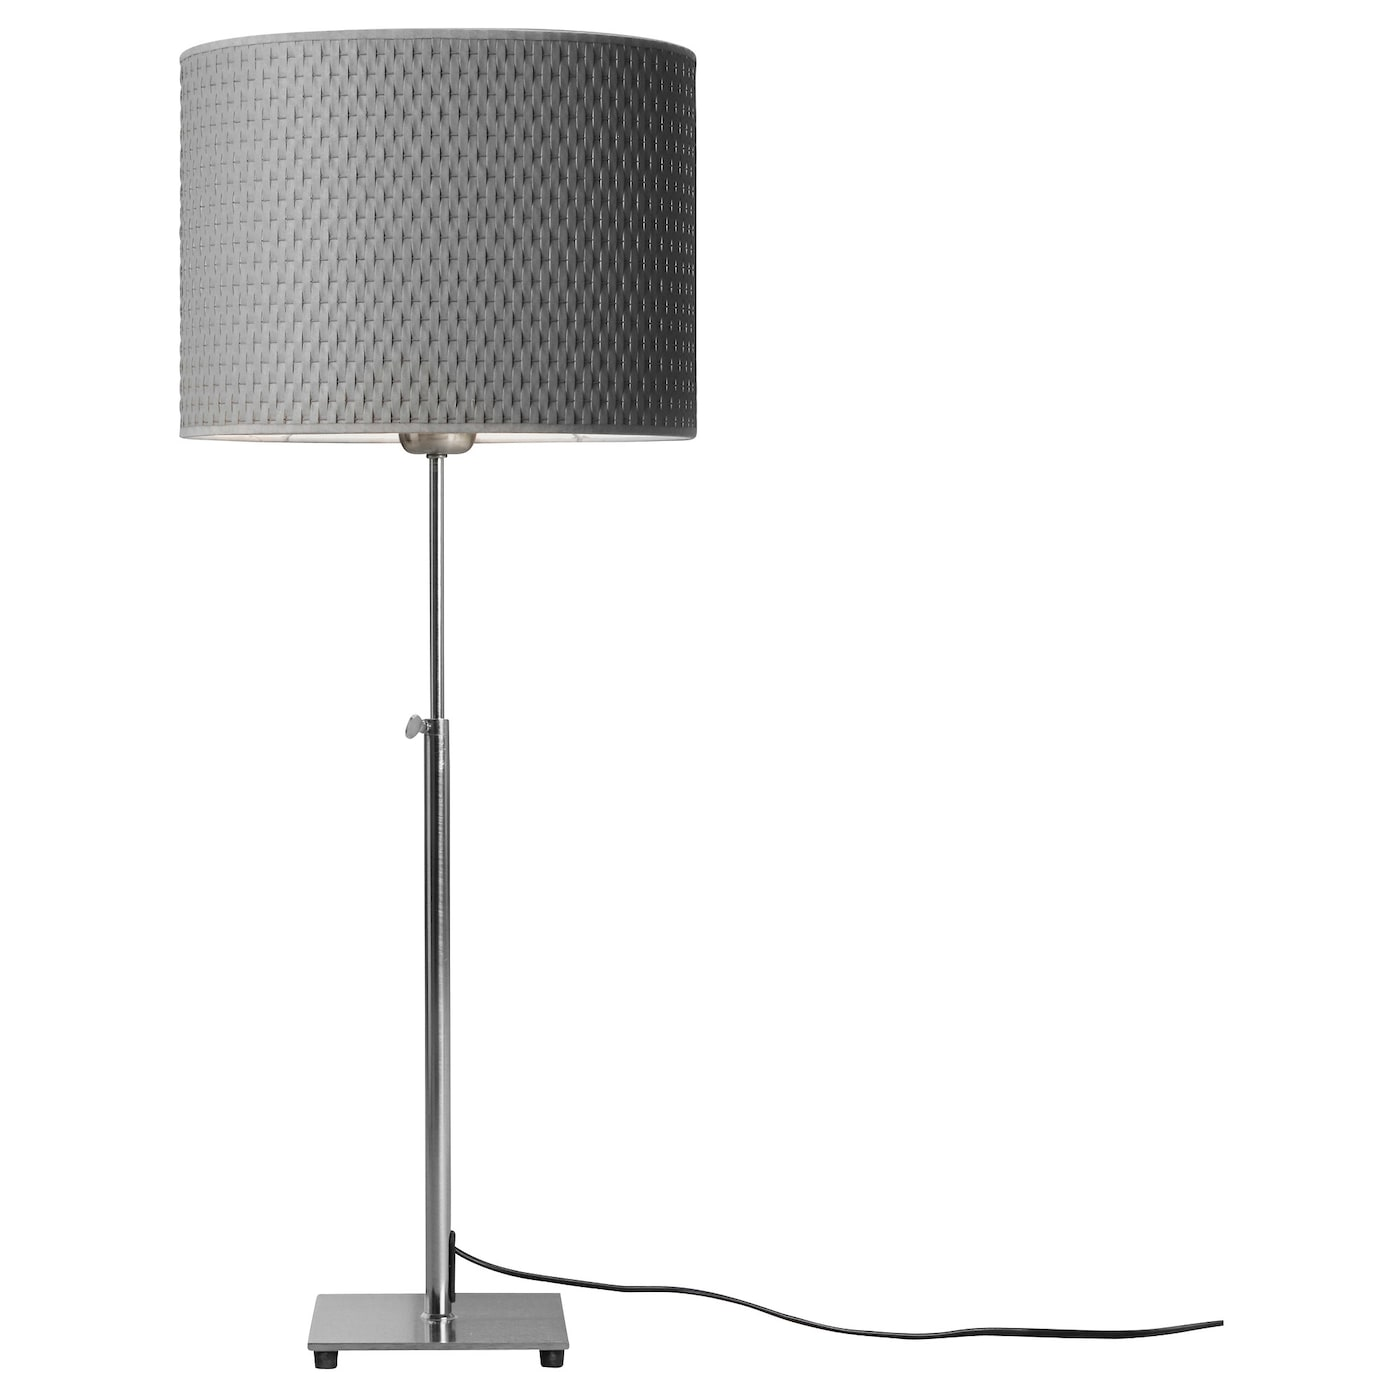 IKEA ALNG Table Lamp The Height Is Adjustable To Suit Your Lighting Needs